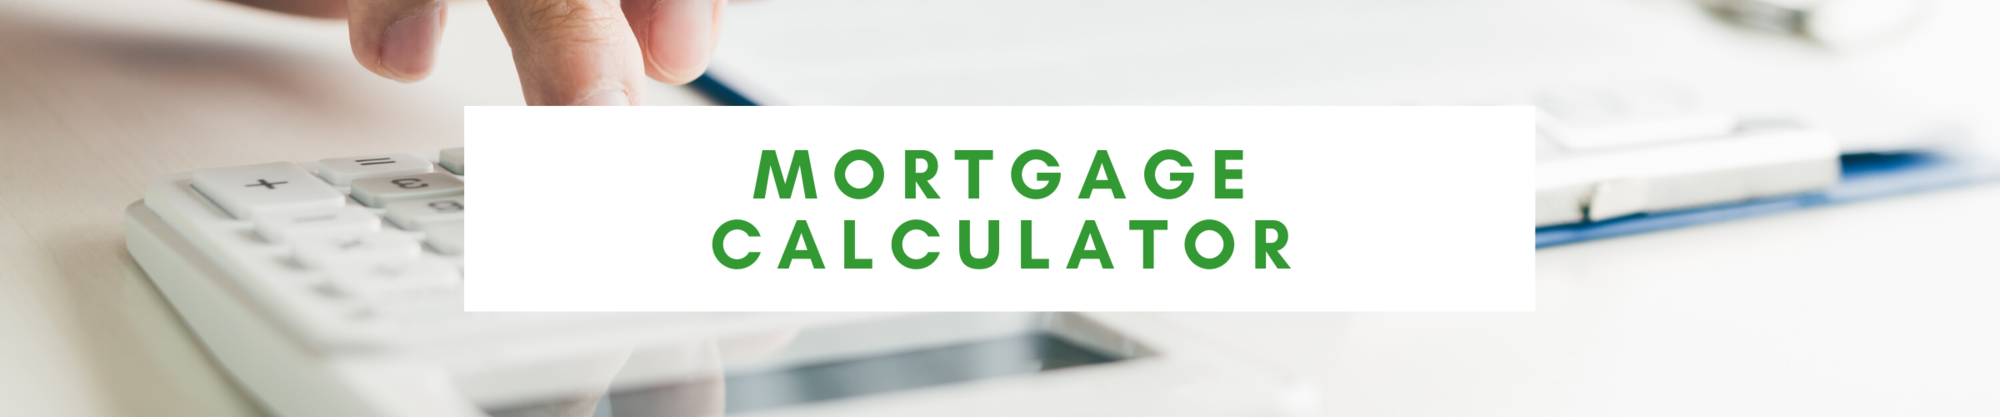 Mortgage Calculator | Tanya Loria | Kansas City Homes